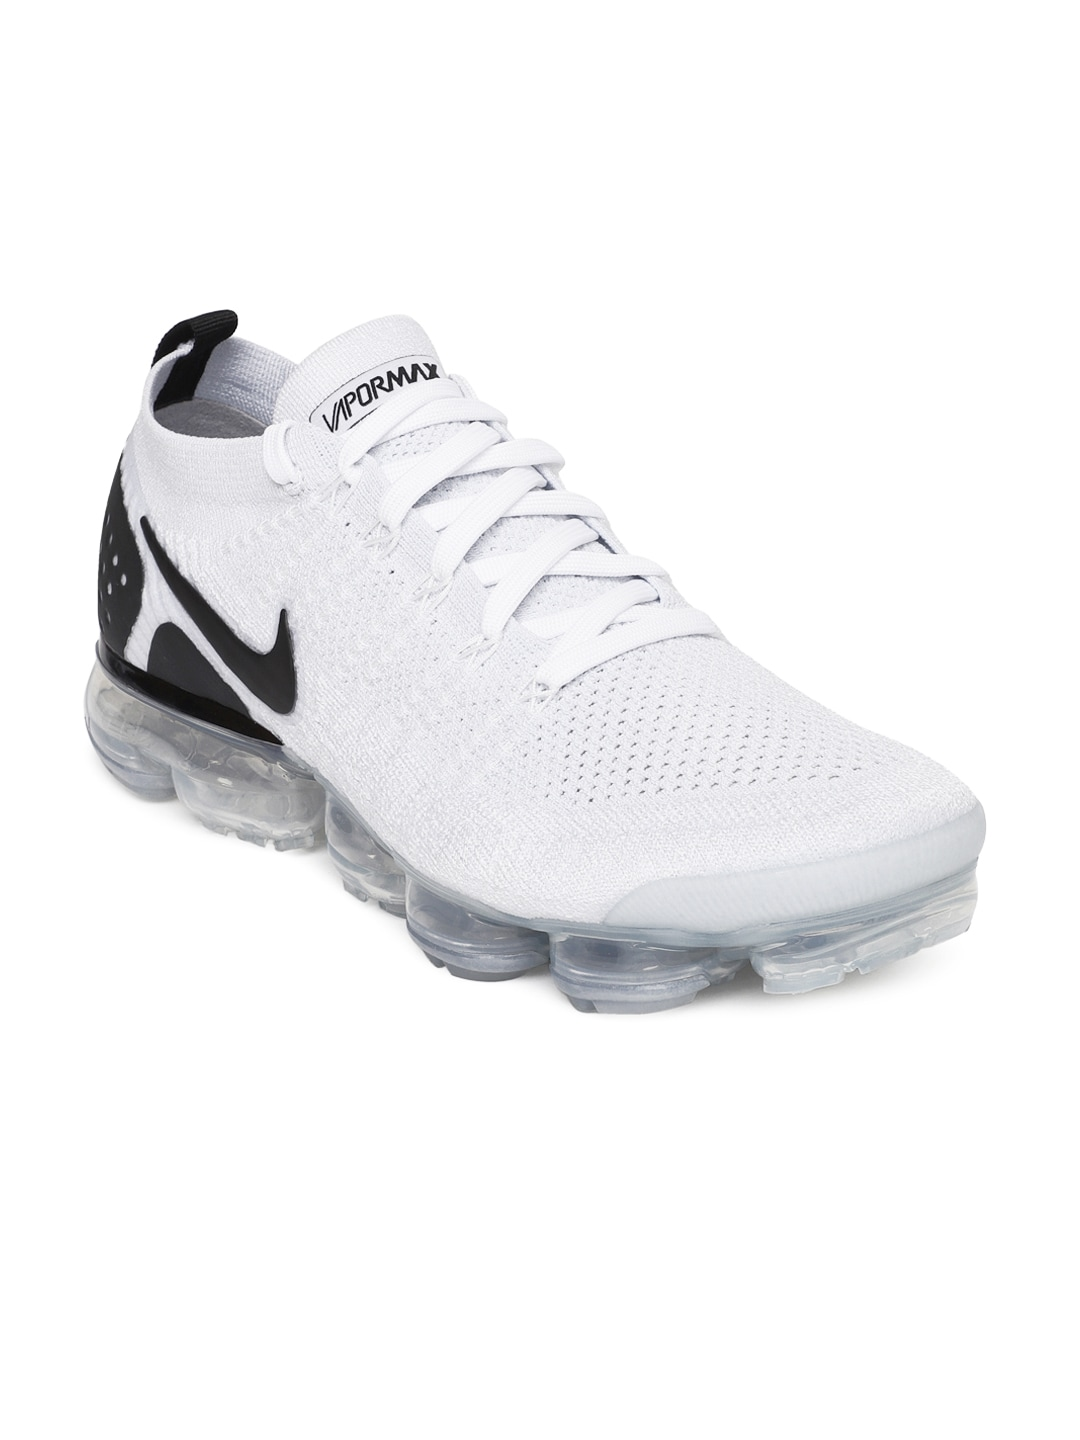 e88a894f83 f8a00f11-3e71-4663-856b-2691875a7aa31545828488232-Nike-Men-White-Air-VaporMax-Flyknit-2-Running-Shoes-86615458-1.jpg